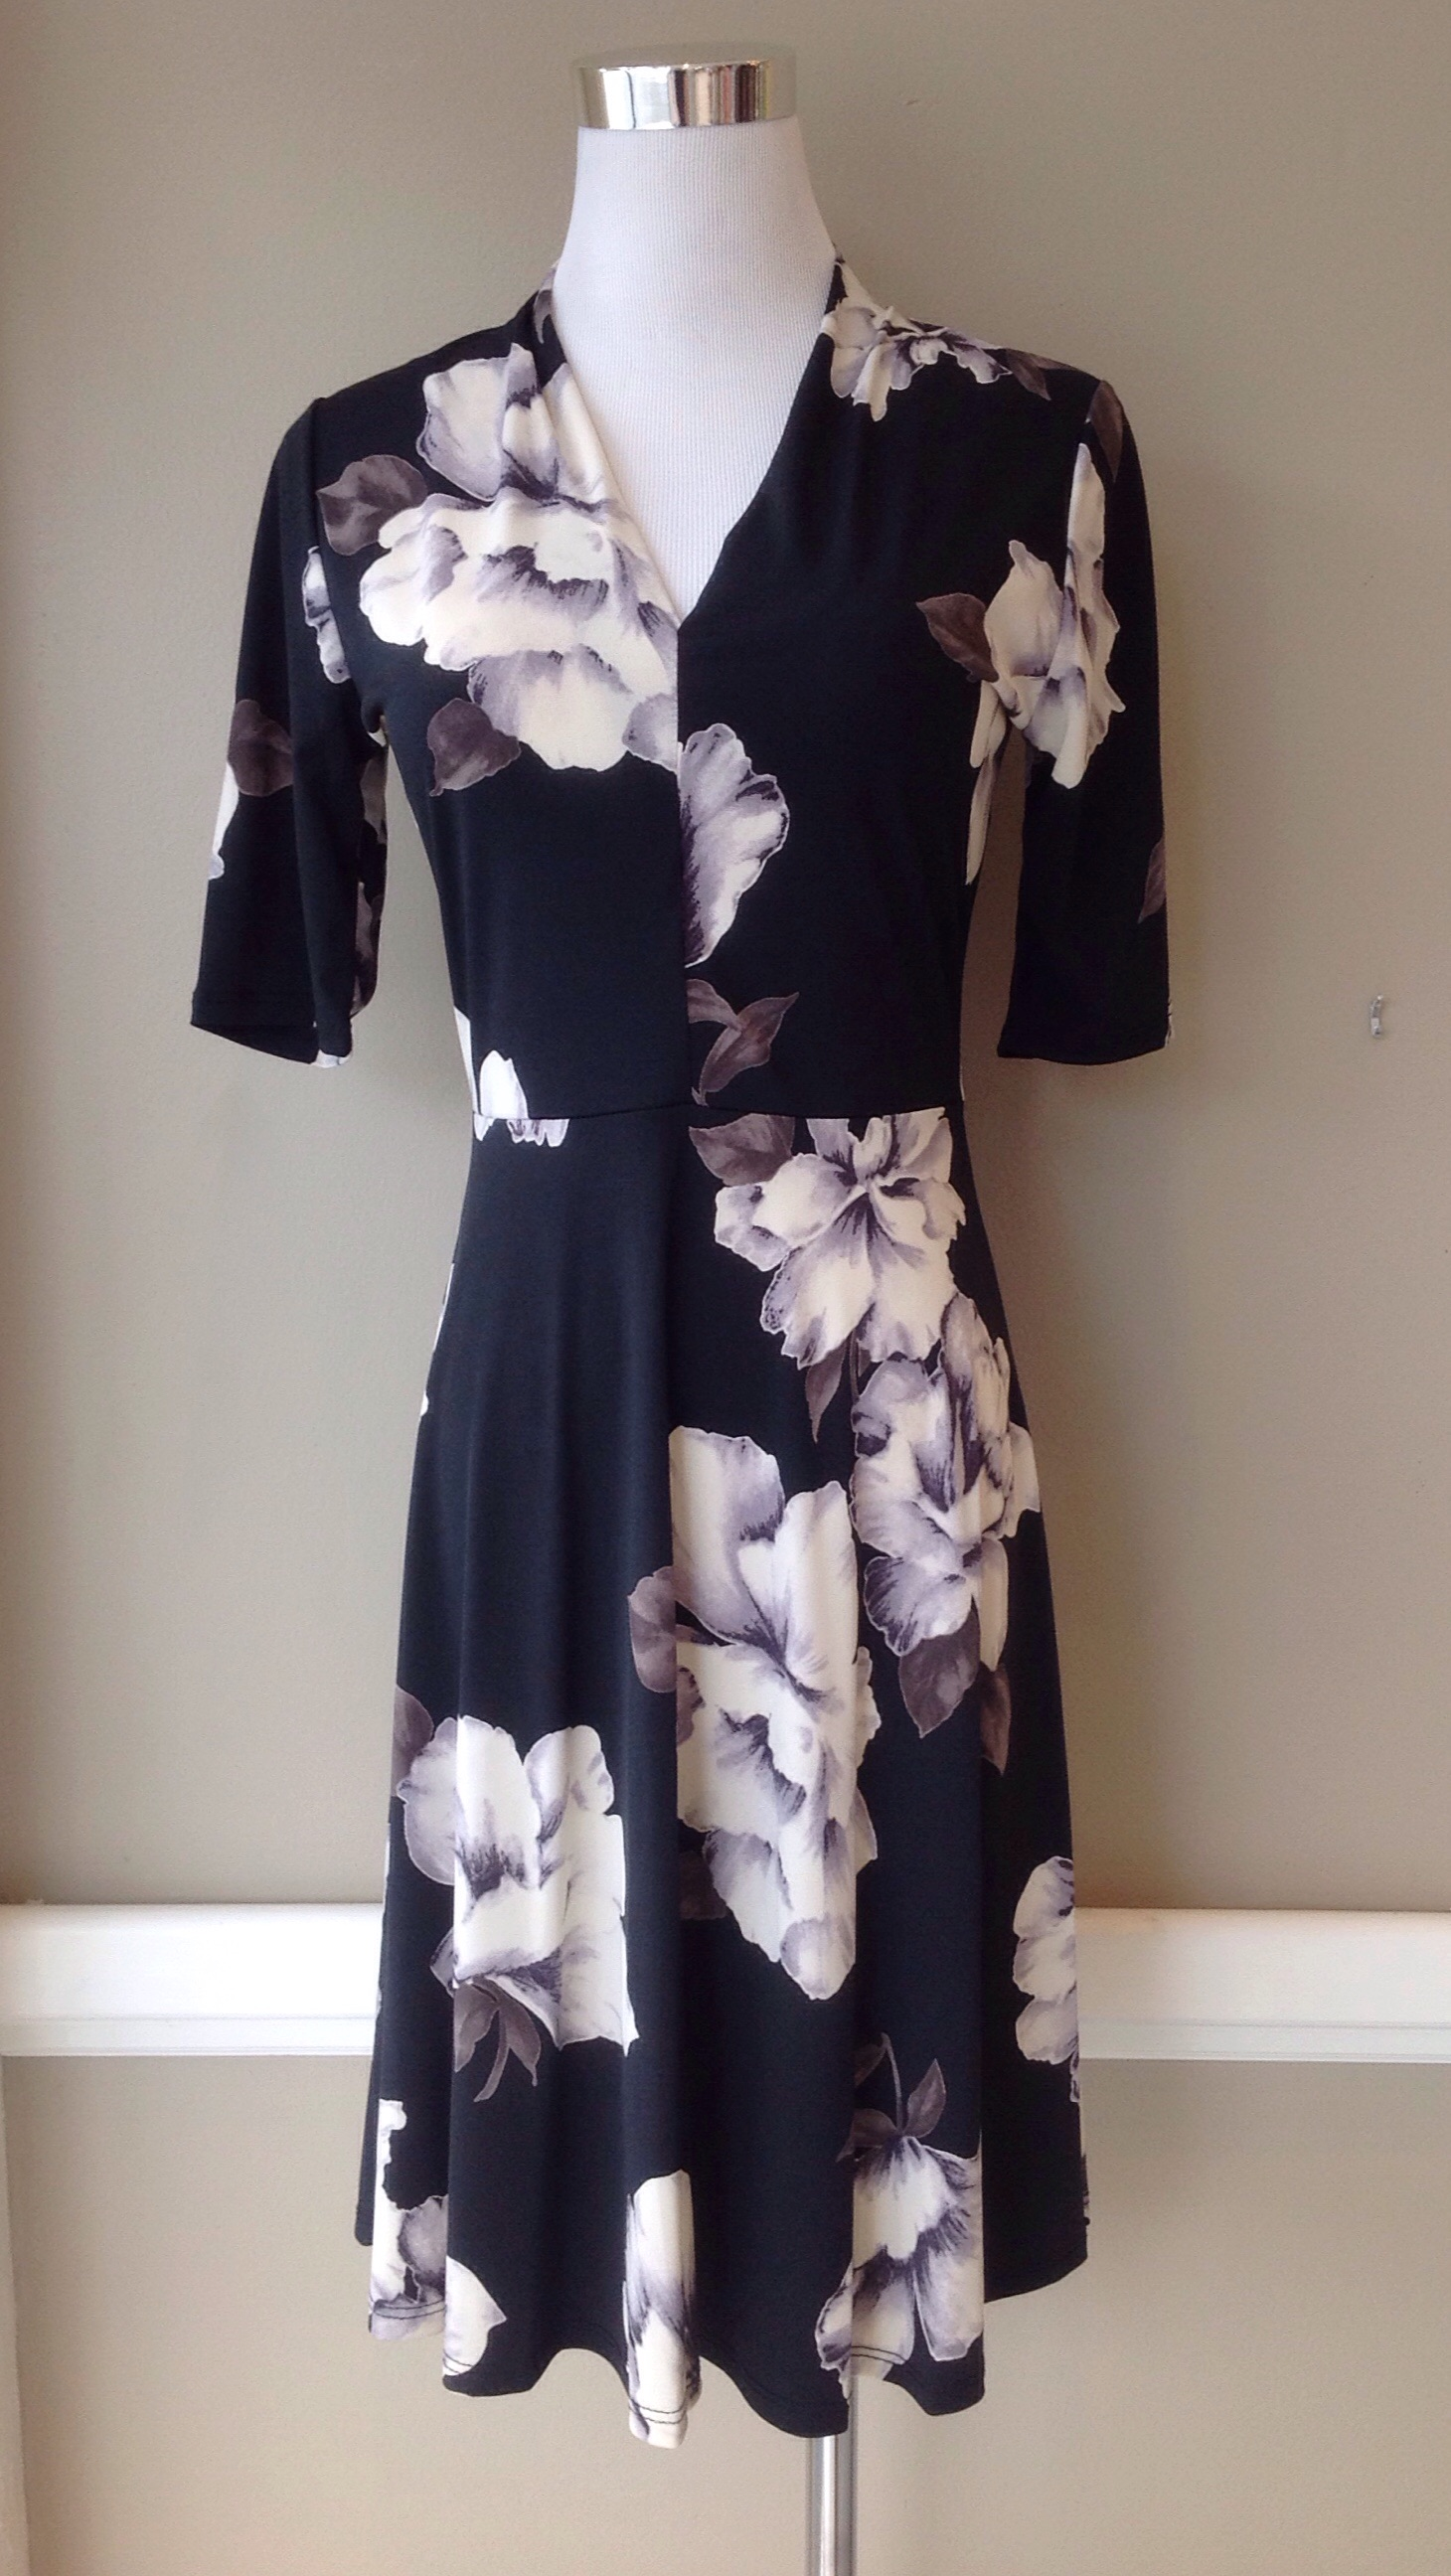 Black floral knit dress, $42